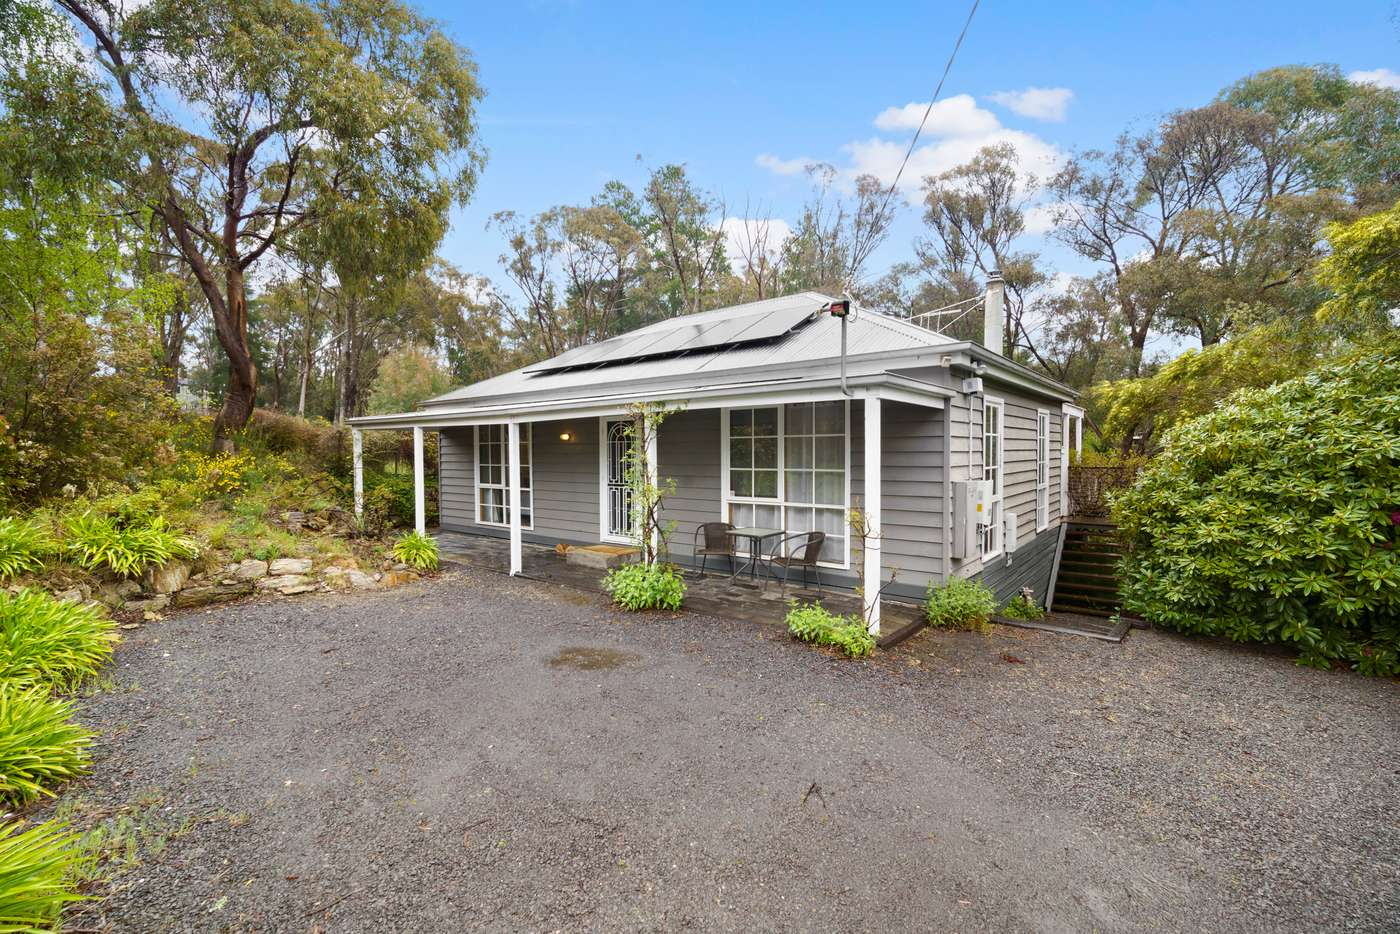 Main view of Homely house listing, 24 Leggatt Street, Daylesford VIC 3460